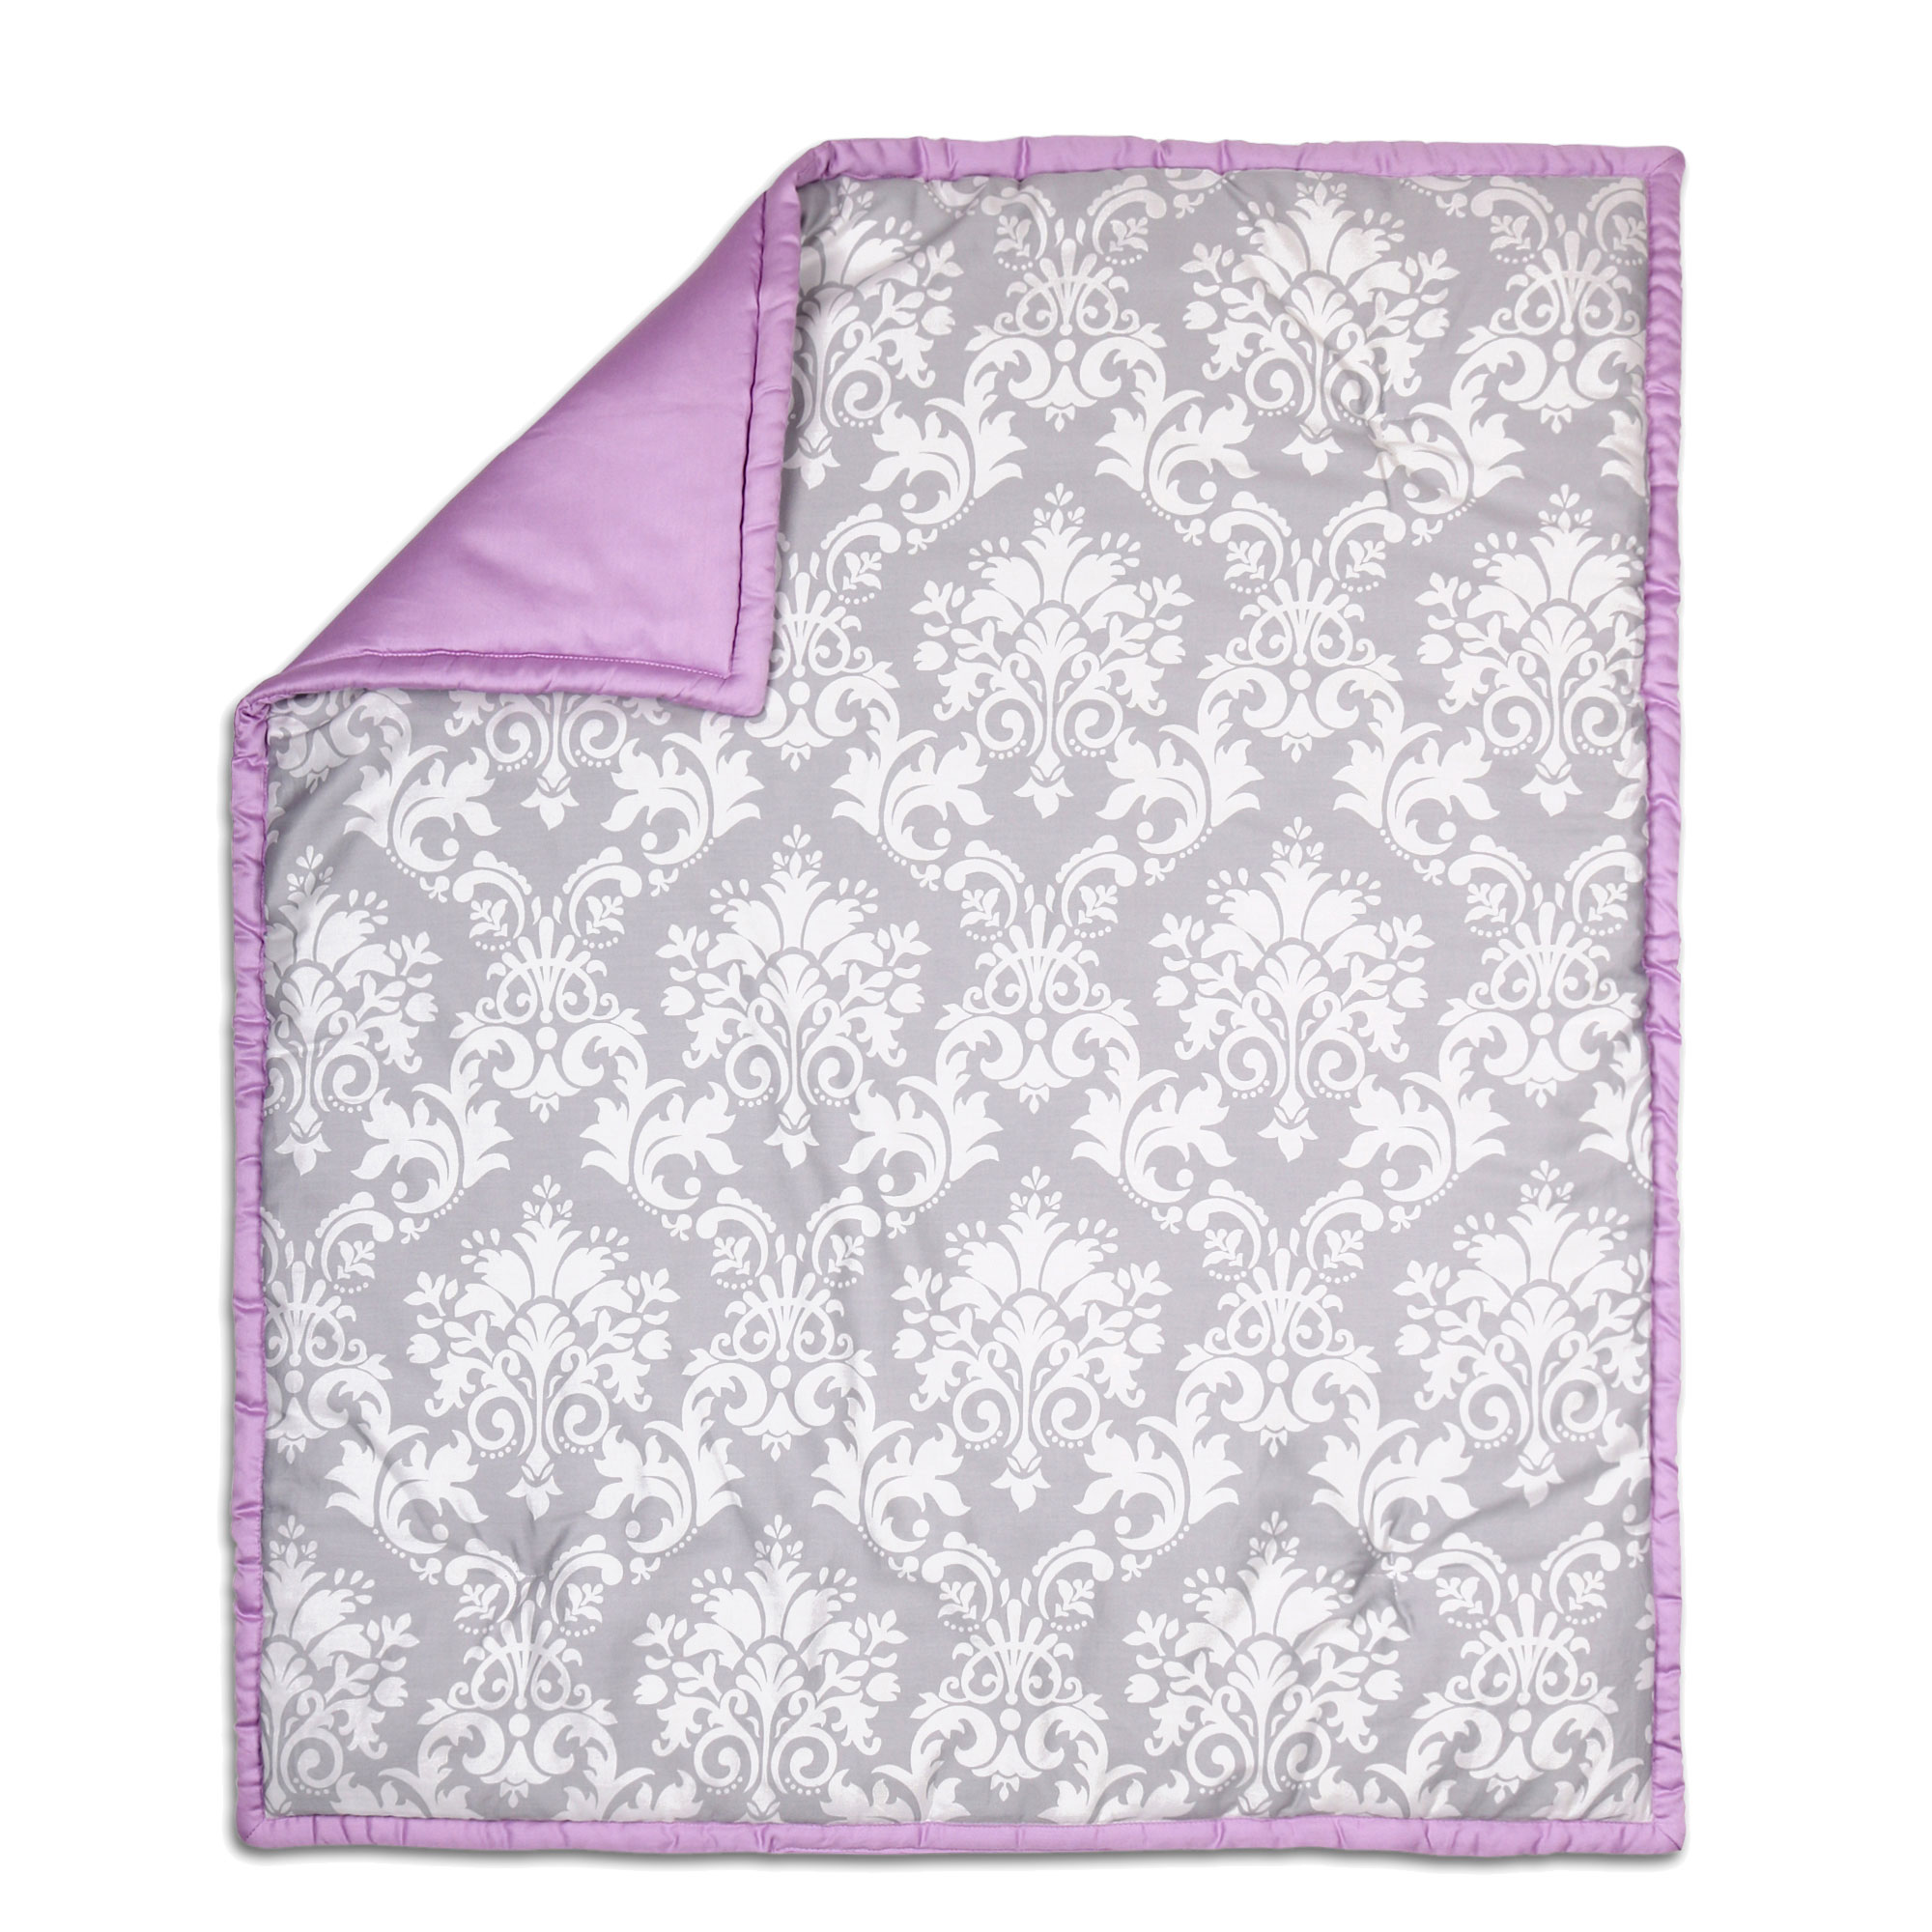 Peanut Shell Baby Crib Quilt - Grey Floral Damask and Pur...